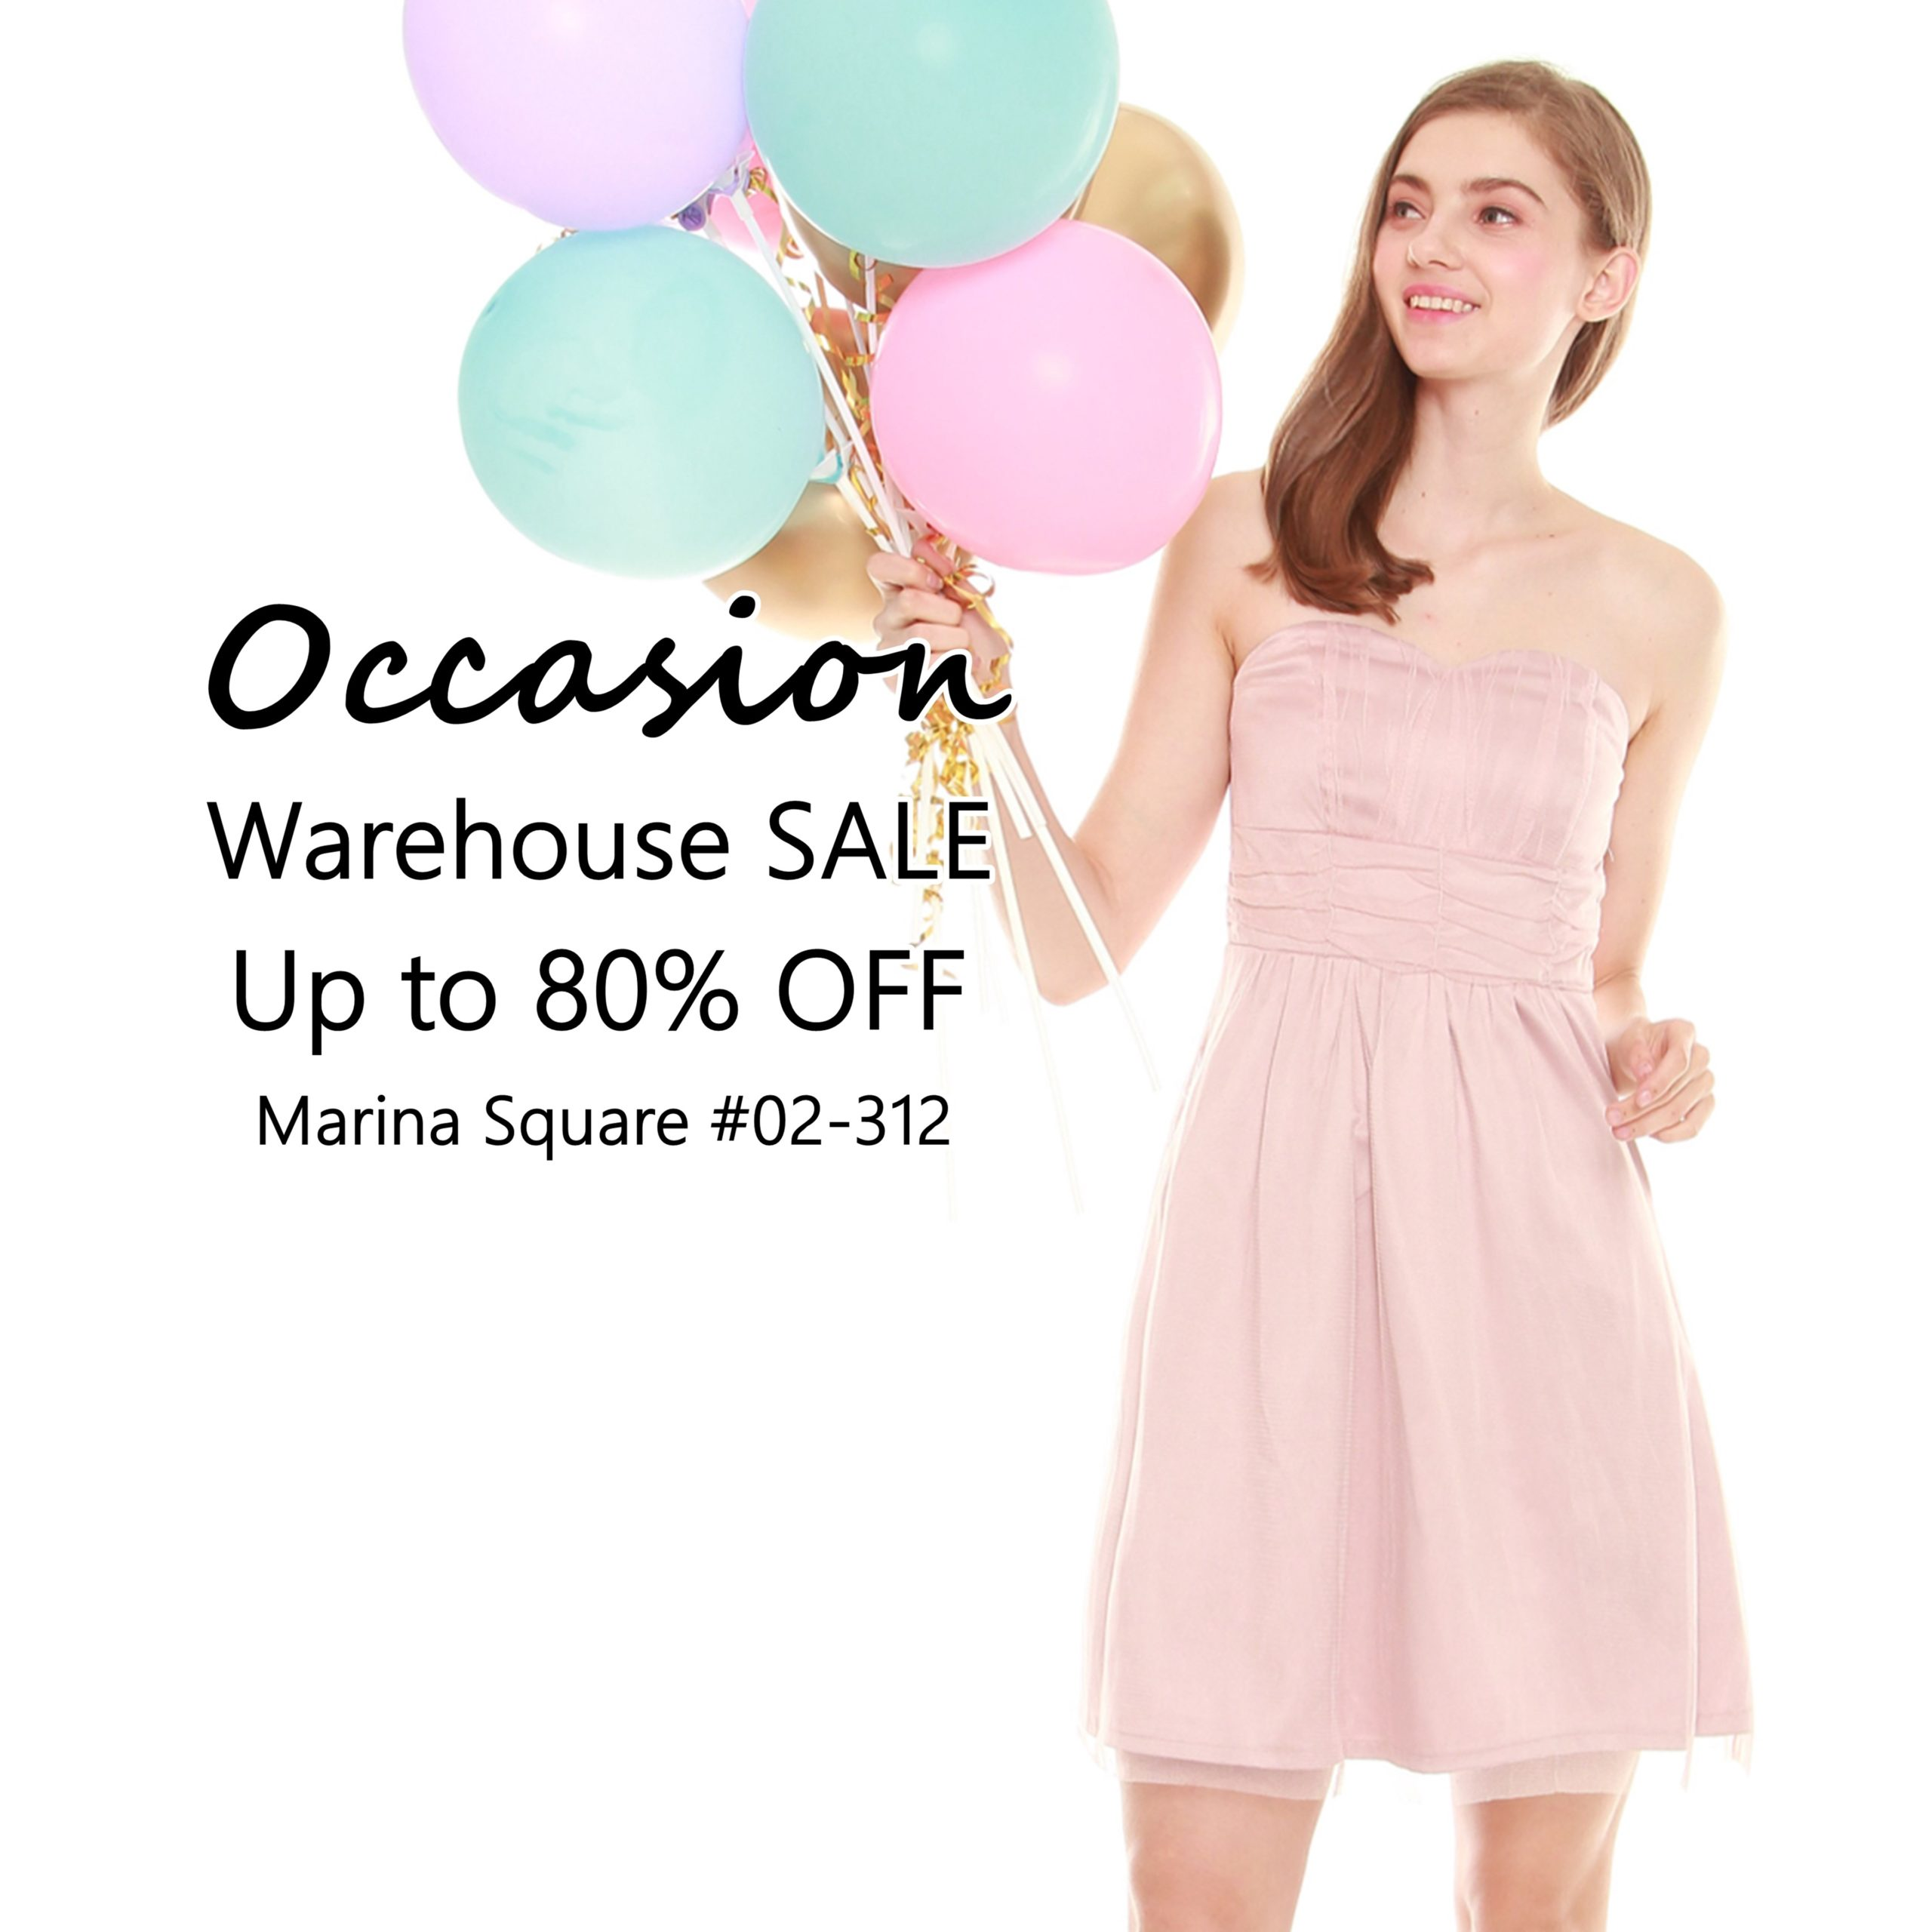 OCCASION Warehouse SALE | Why Not Deals 2 & Promotions